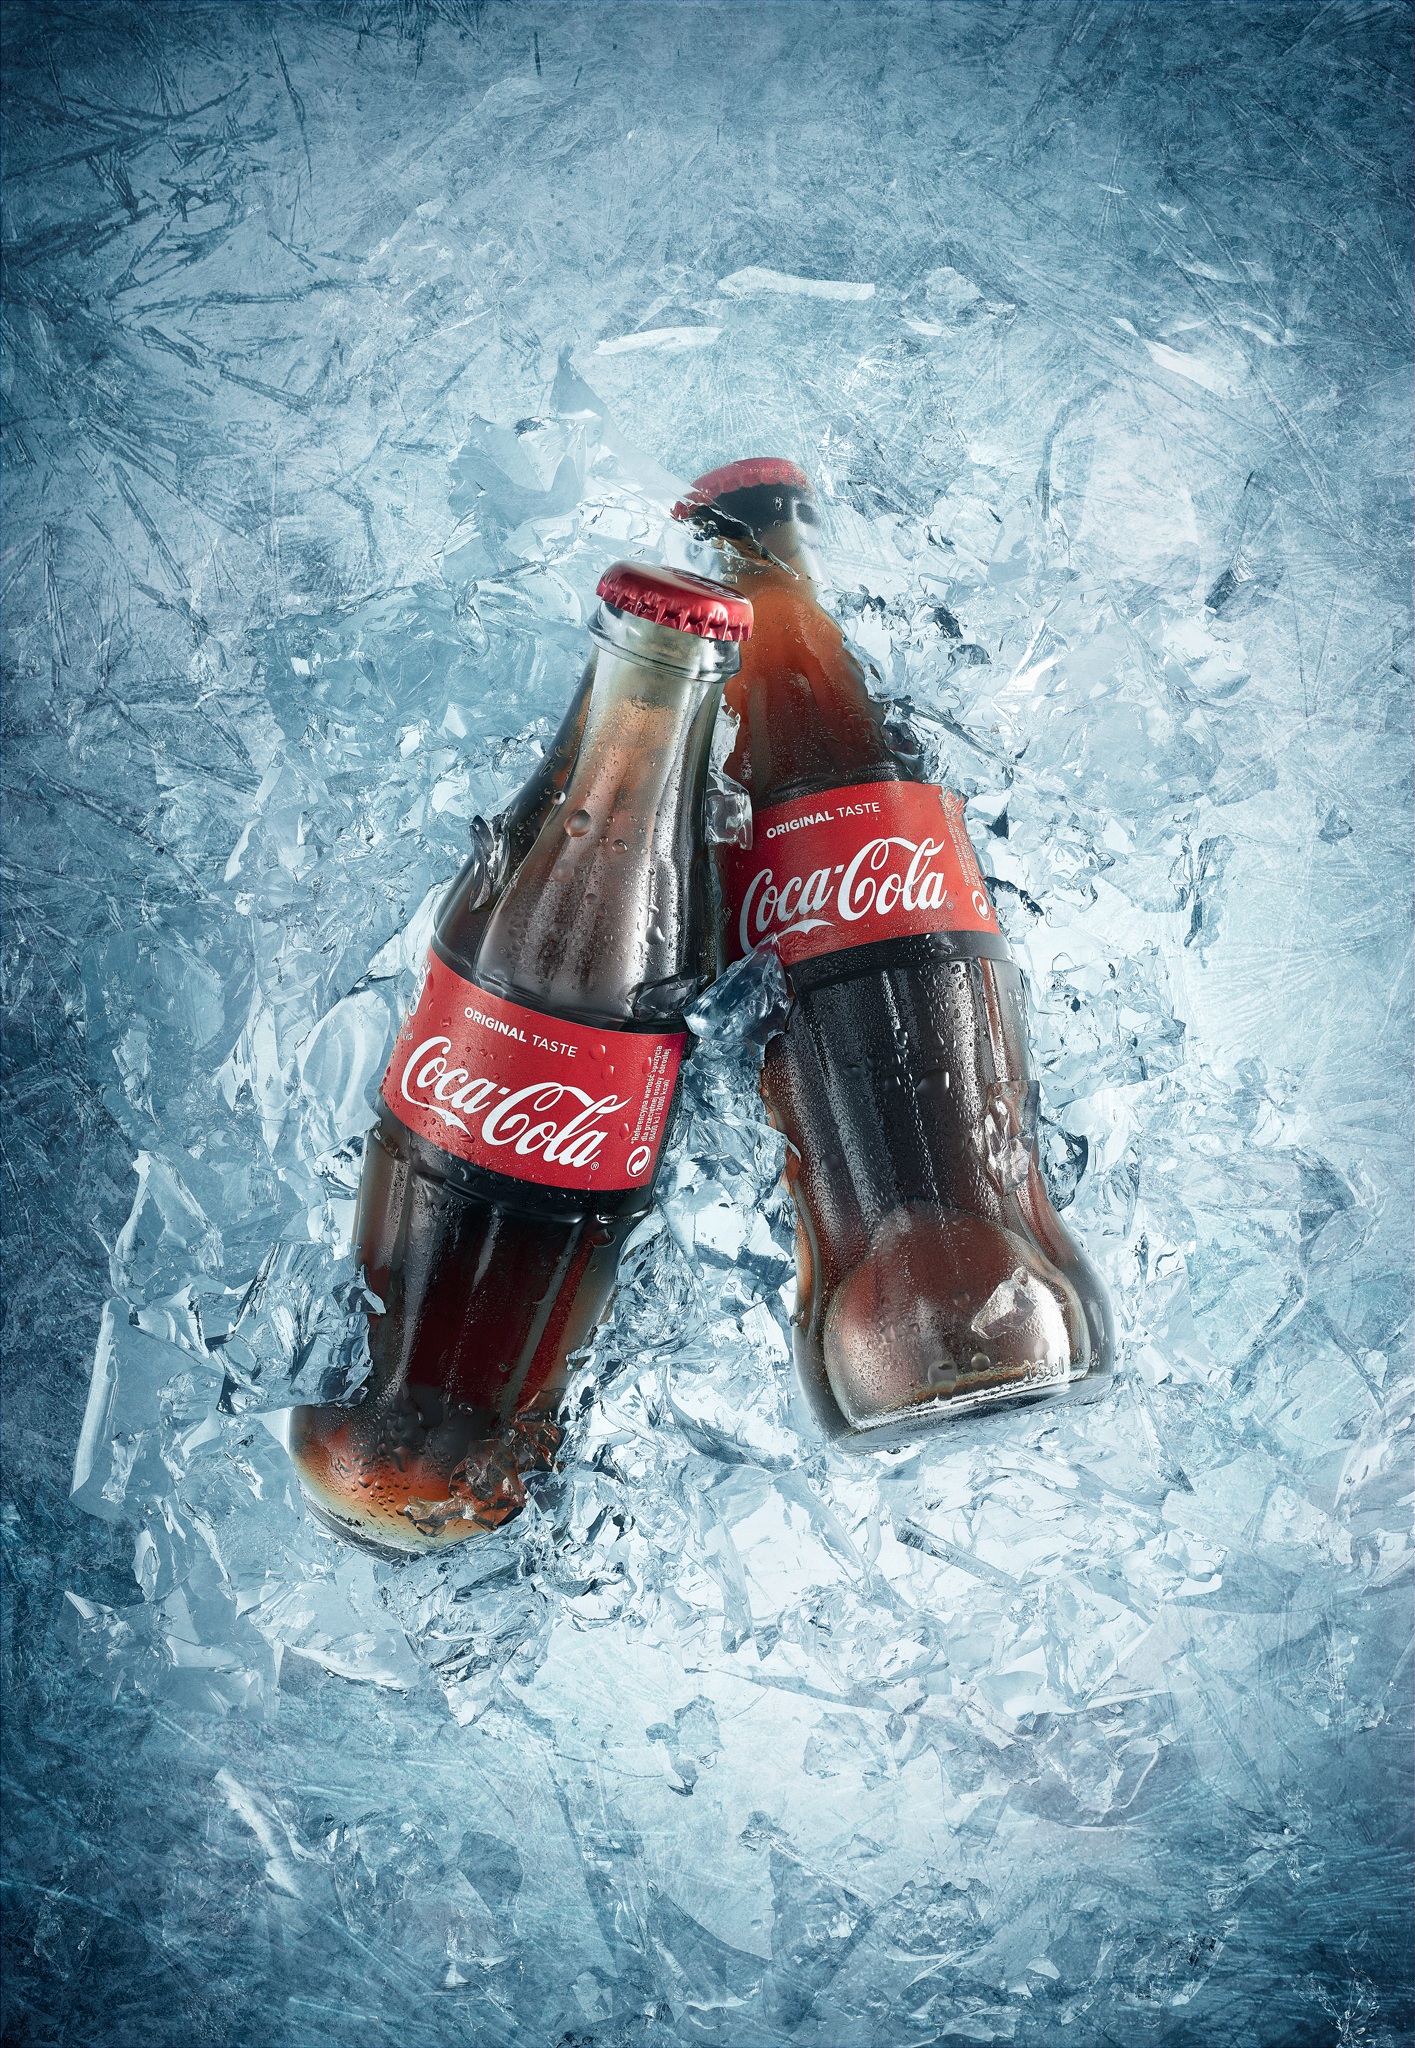 lettstudio_coca_cola_ice_beverage_photography.jpg